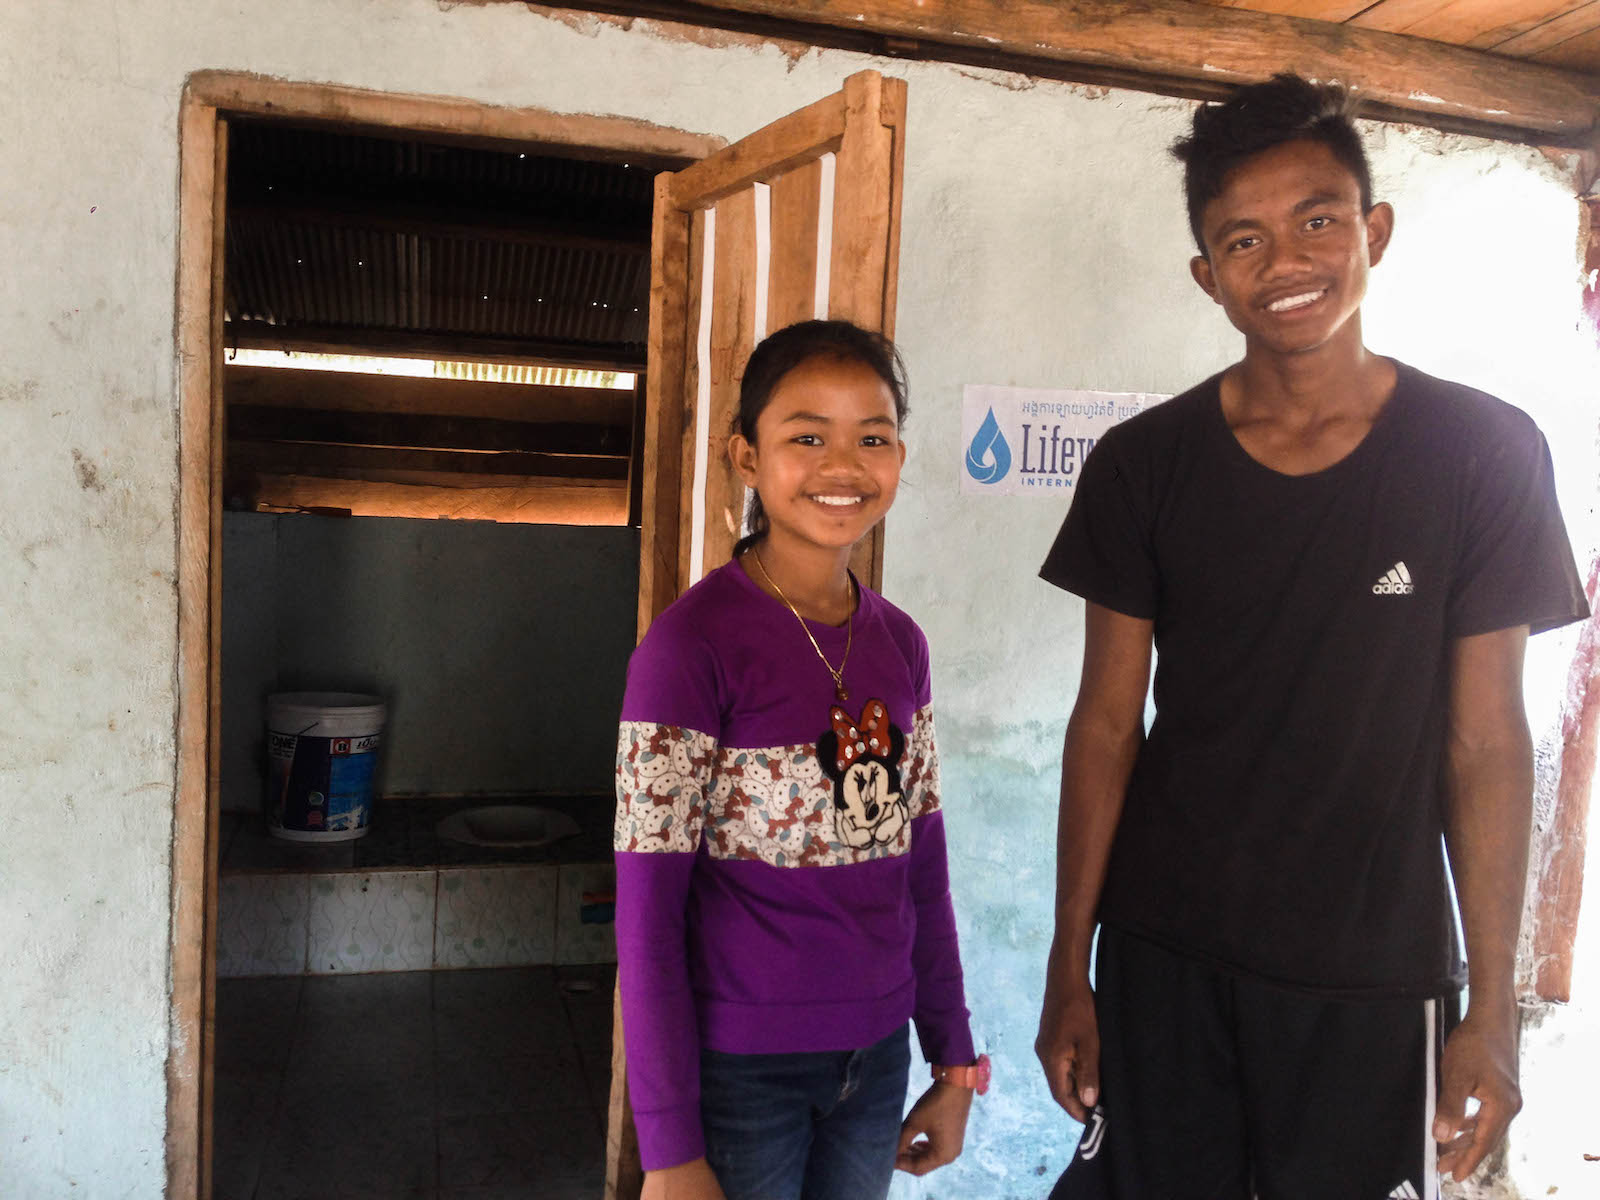 KH03 Lais children show their home latrine close up 1 - In Rural Cambodia, A Single Mother Overcomes the Odds with Clean Water